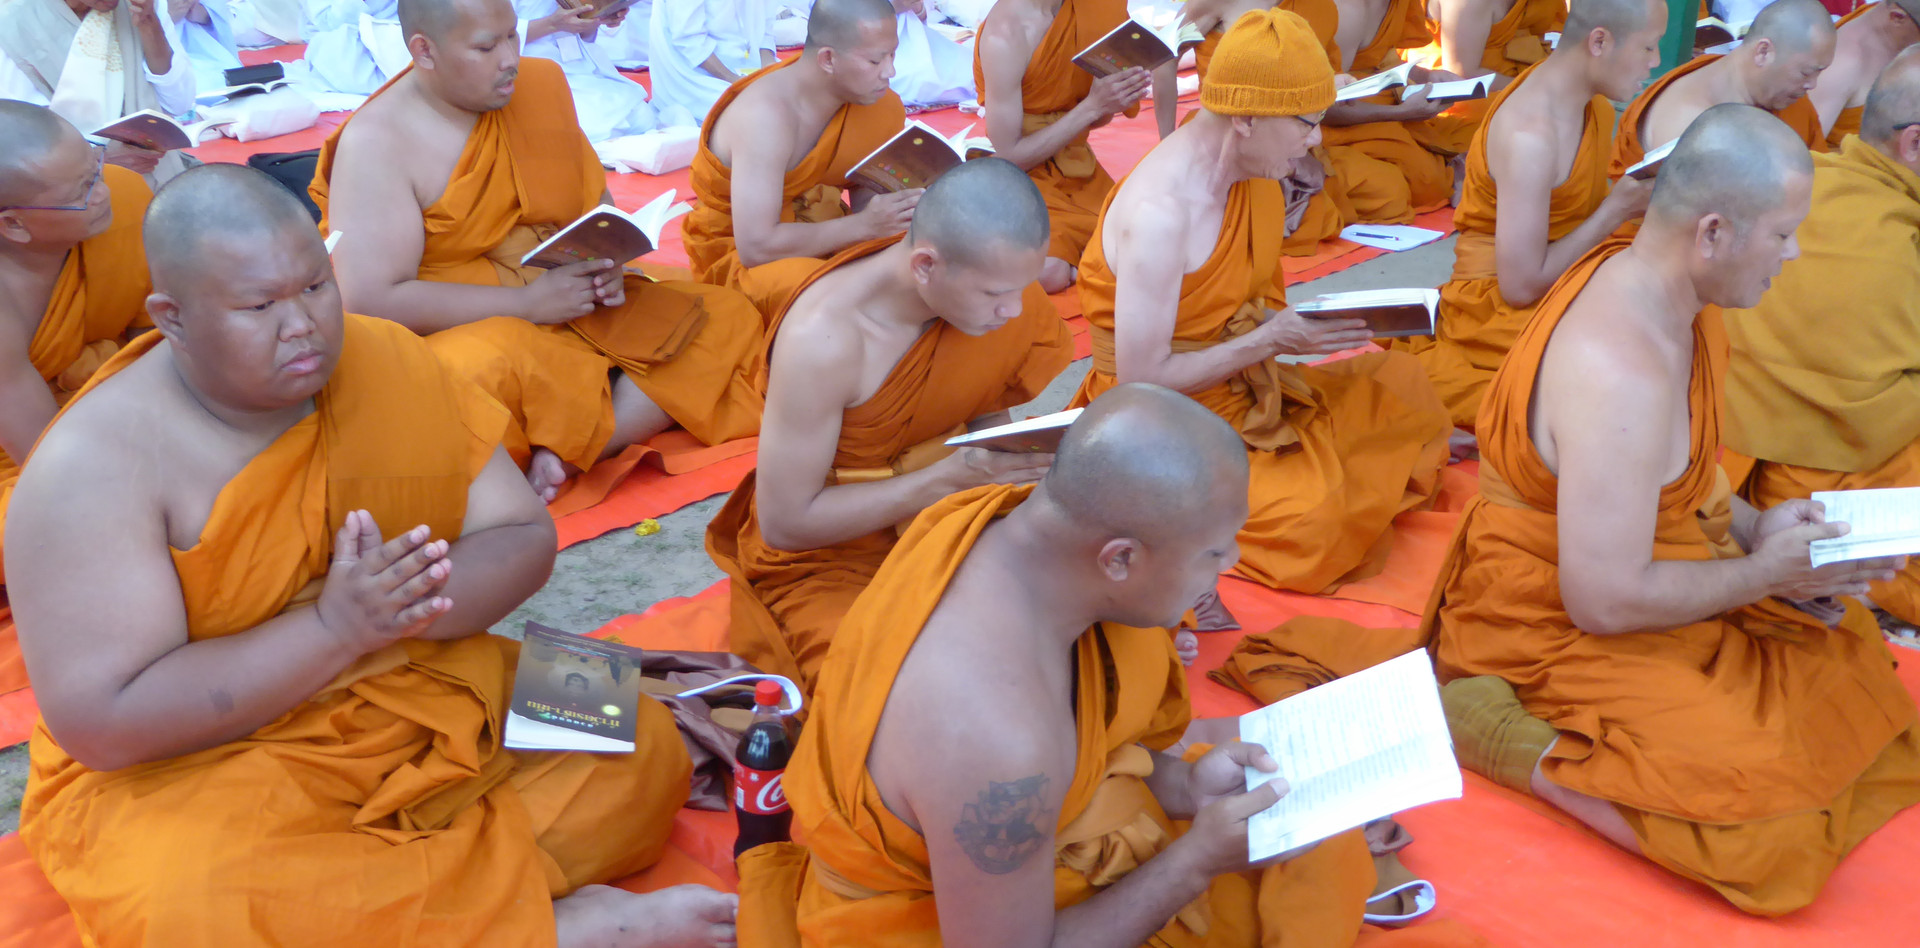 Thai monks meditating